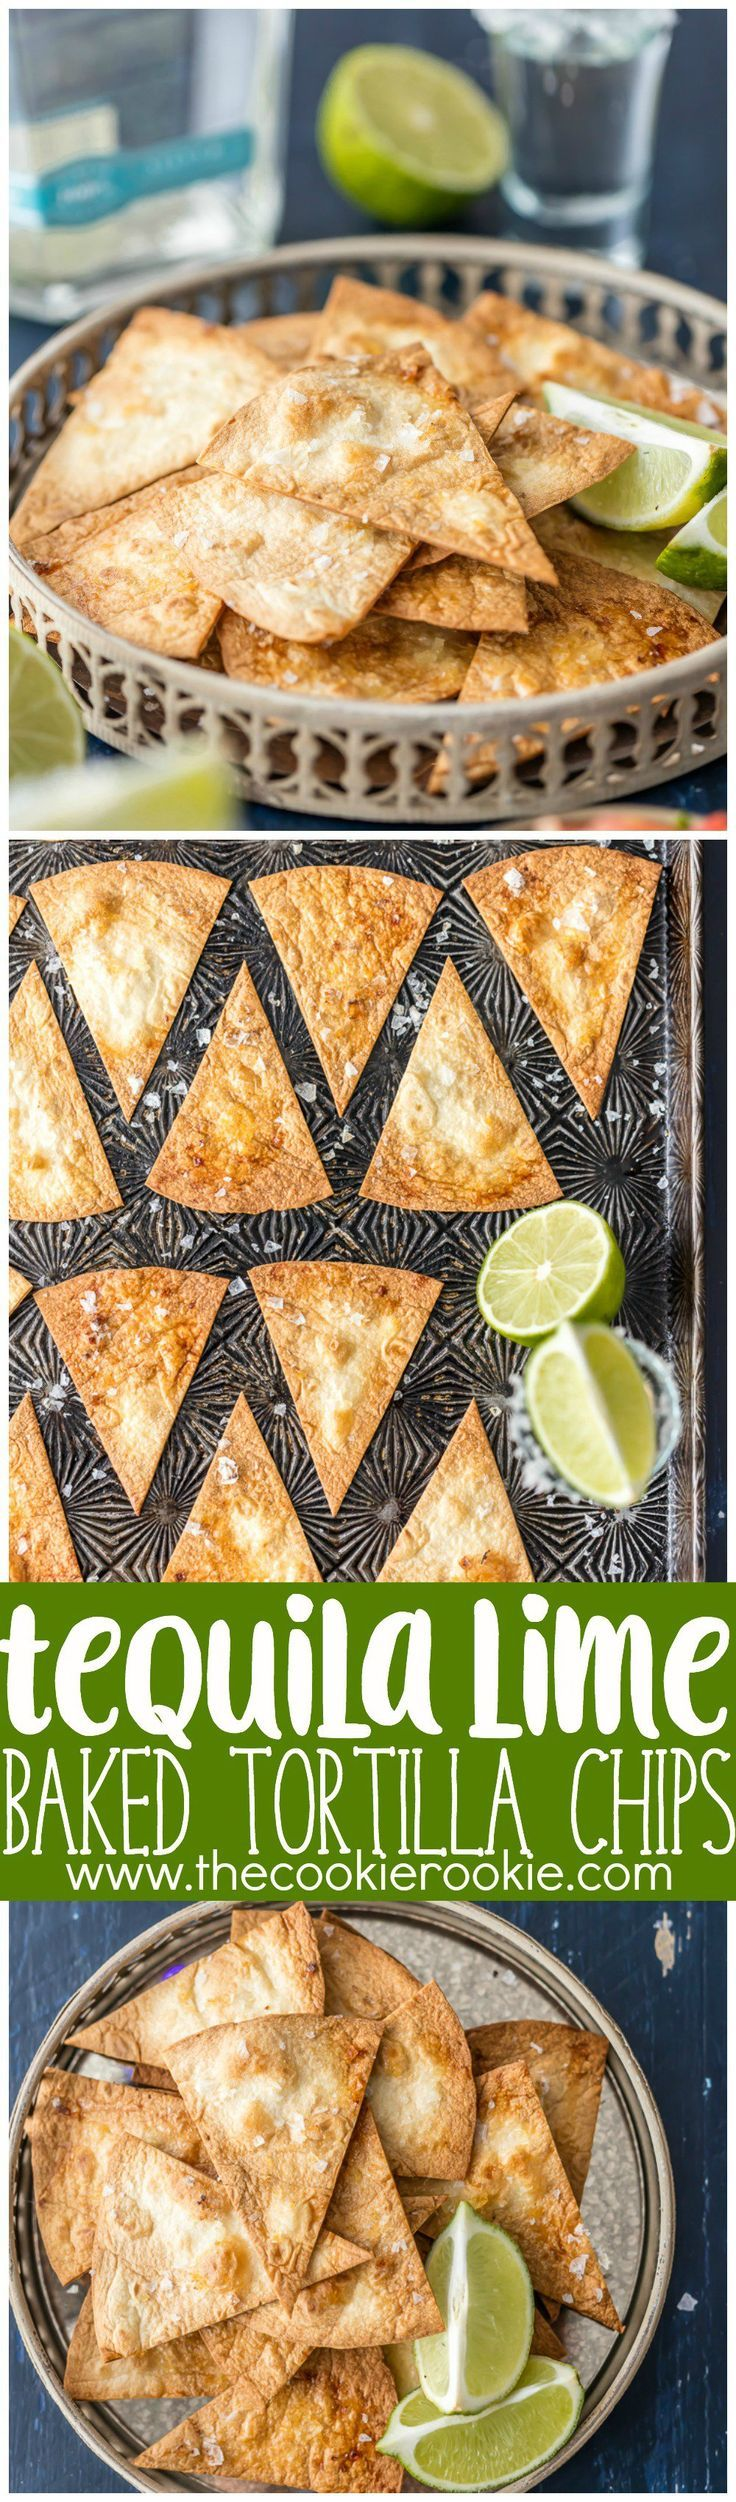 Tequila Lime BAKED Tortilla Chips - Simple healthy chip recipe that's made in minutes at home with soft flour tortillas. THE FLAVOR IS AMAZING! Best homemade chip recipe ever!